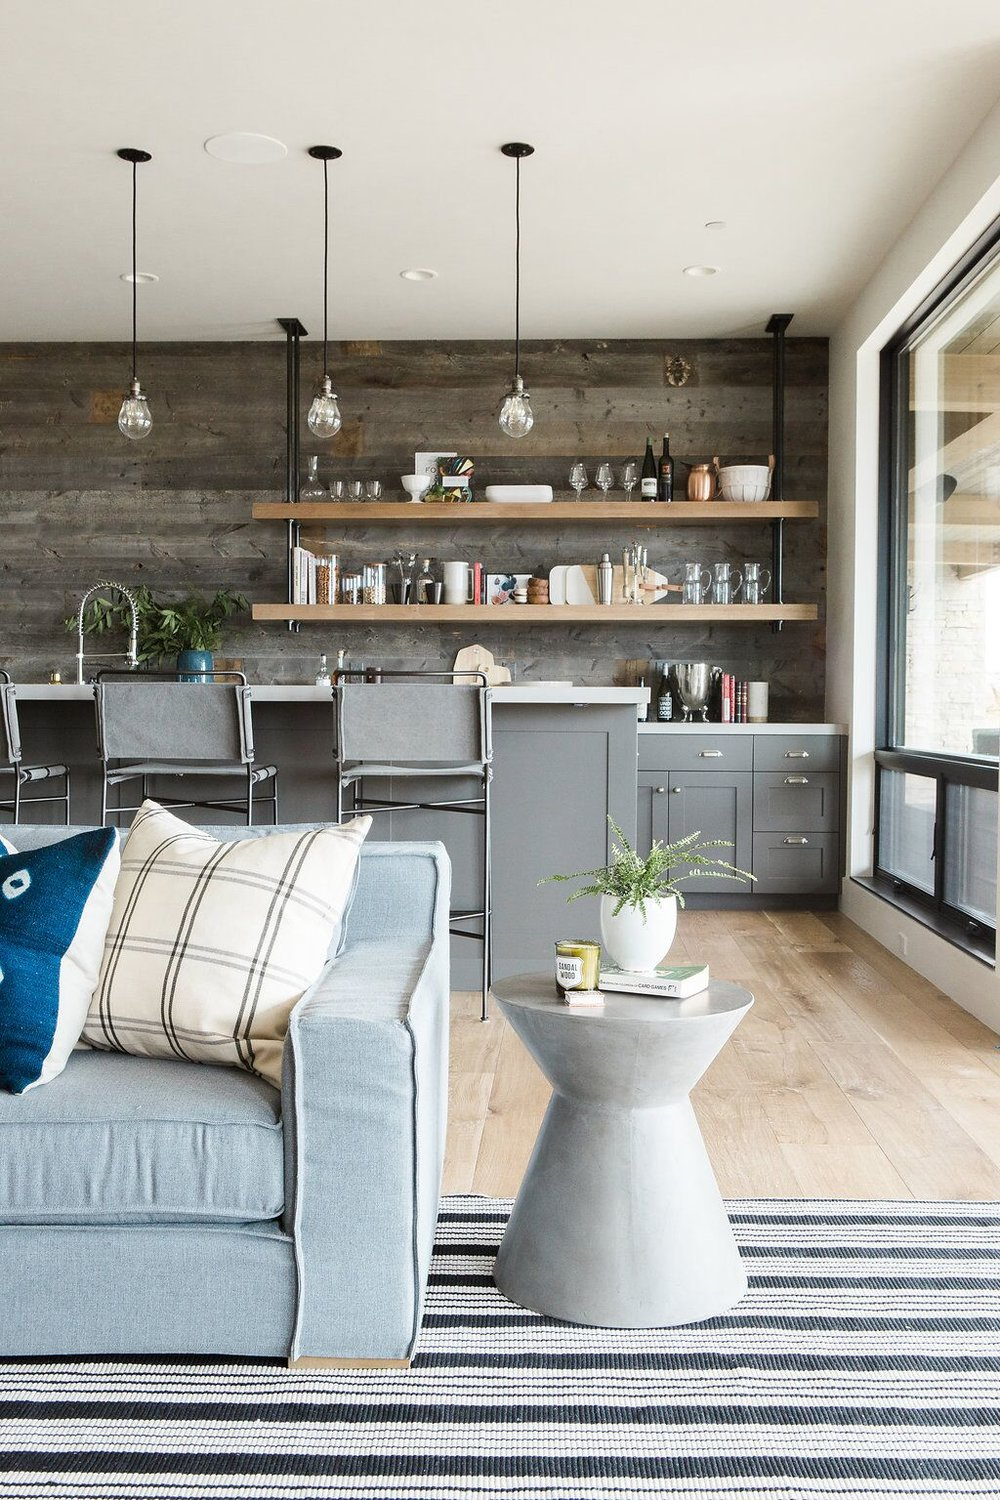 Industrial+designed+wet+bar+with+reclaimed+wood+and+pipe+shelving.jpg